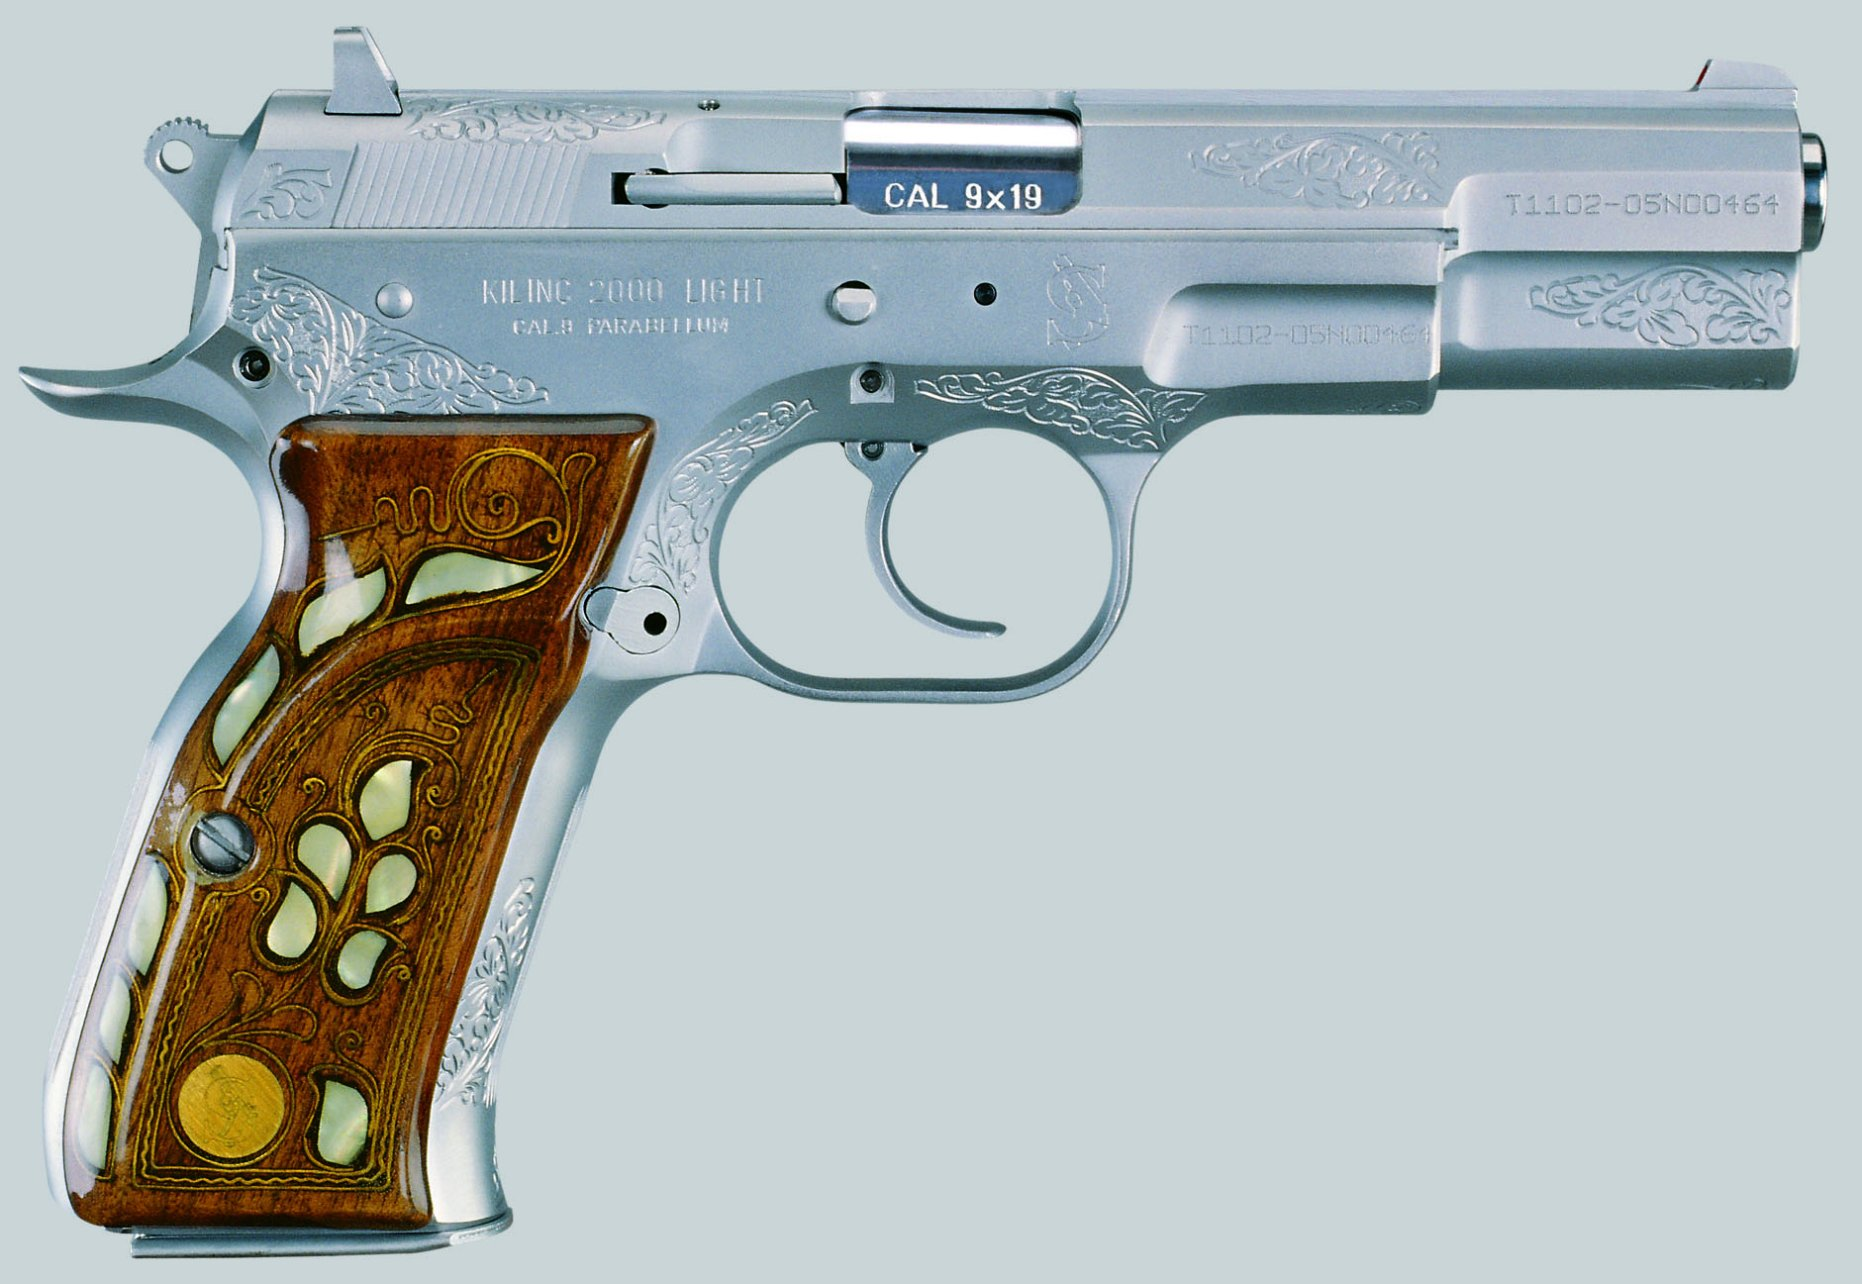 Happy Birthday to Me!-kilinc-20special-20engraved.jpg